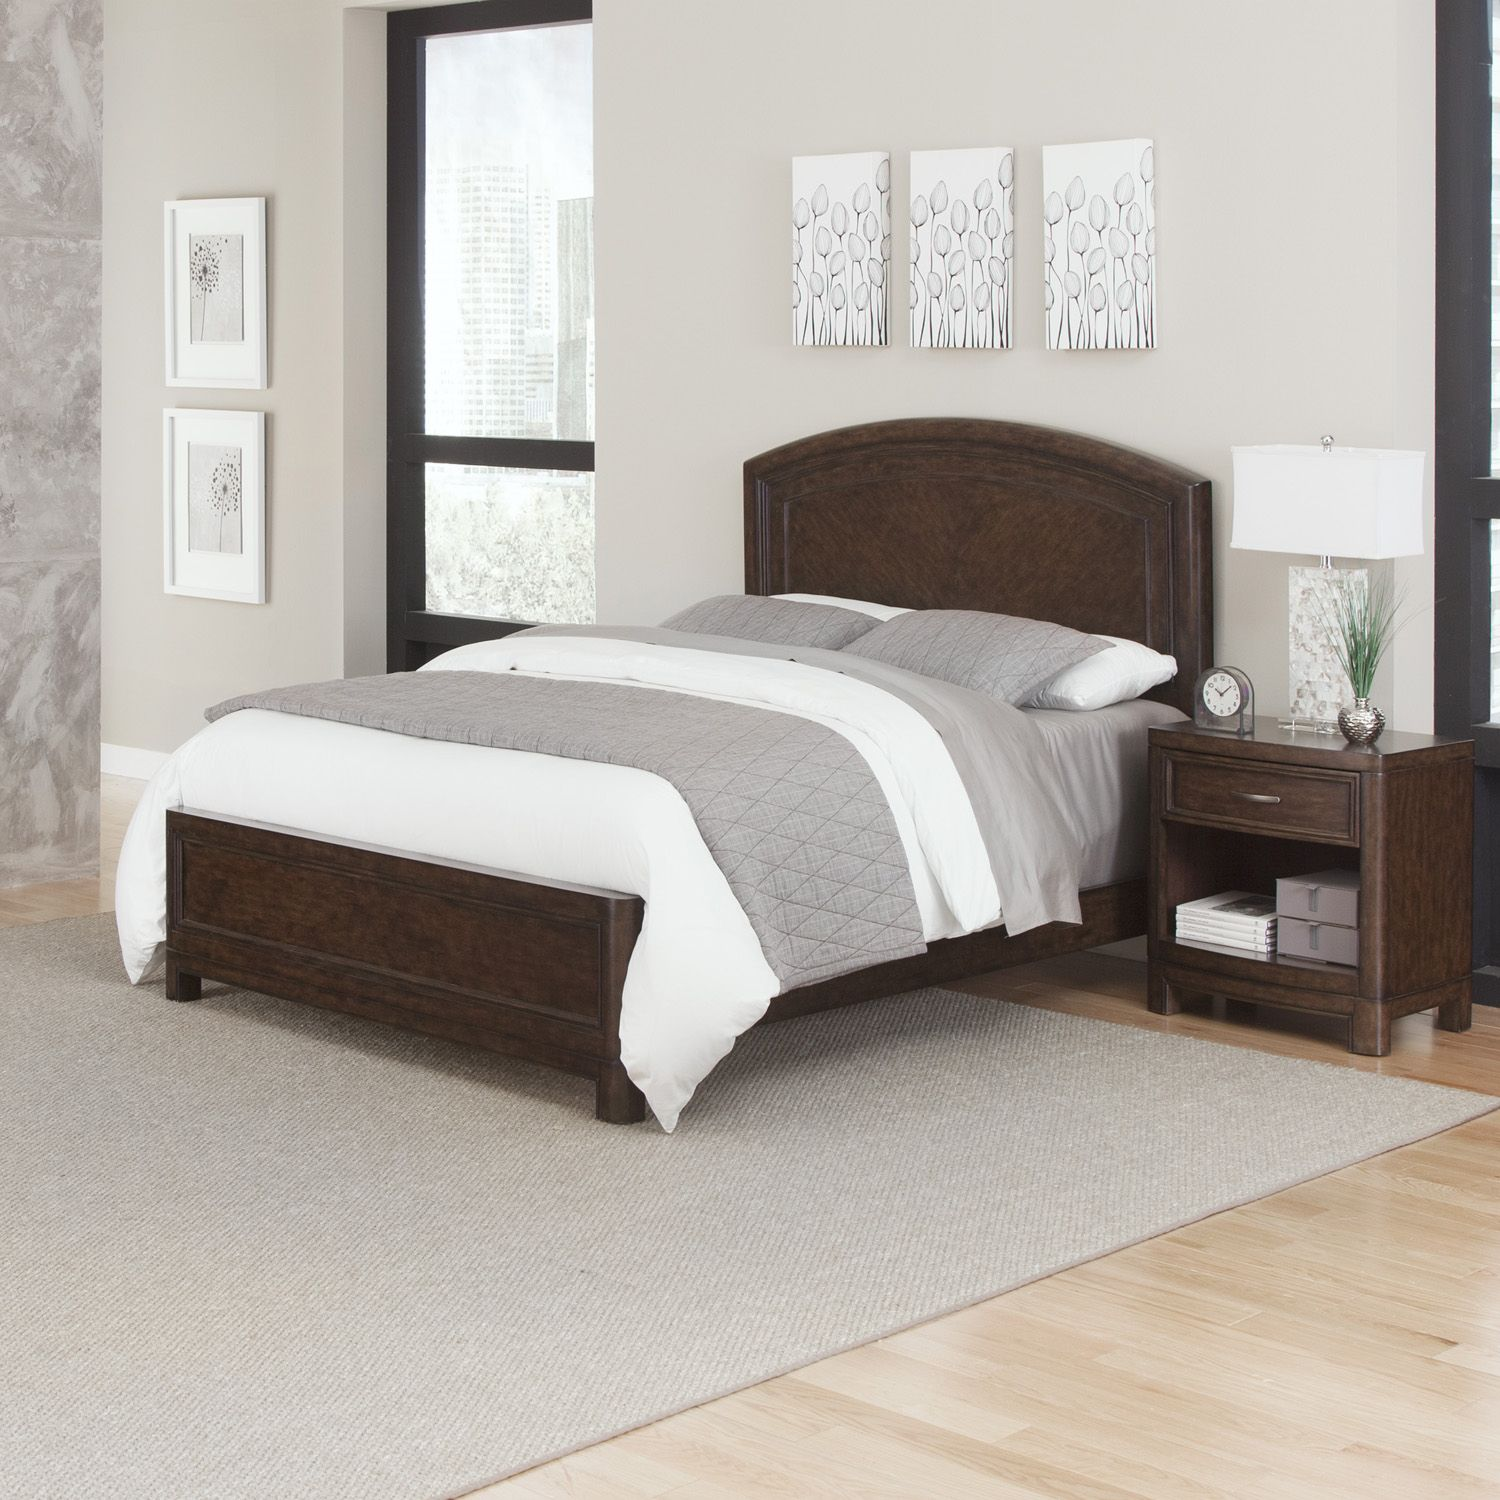 Fancy Home Styles Crescent Hill piece Bed and Nightstand Set